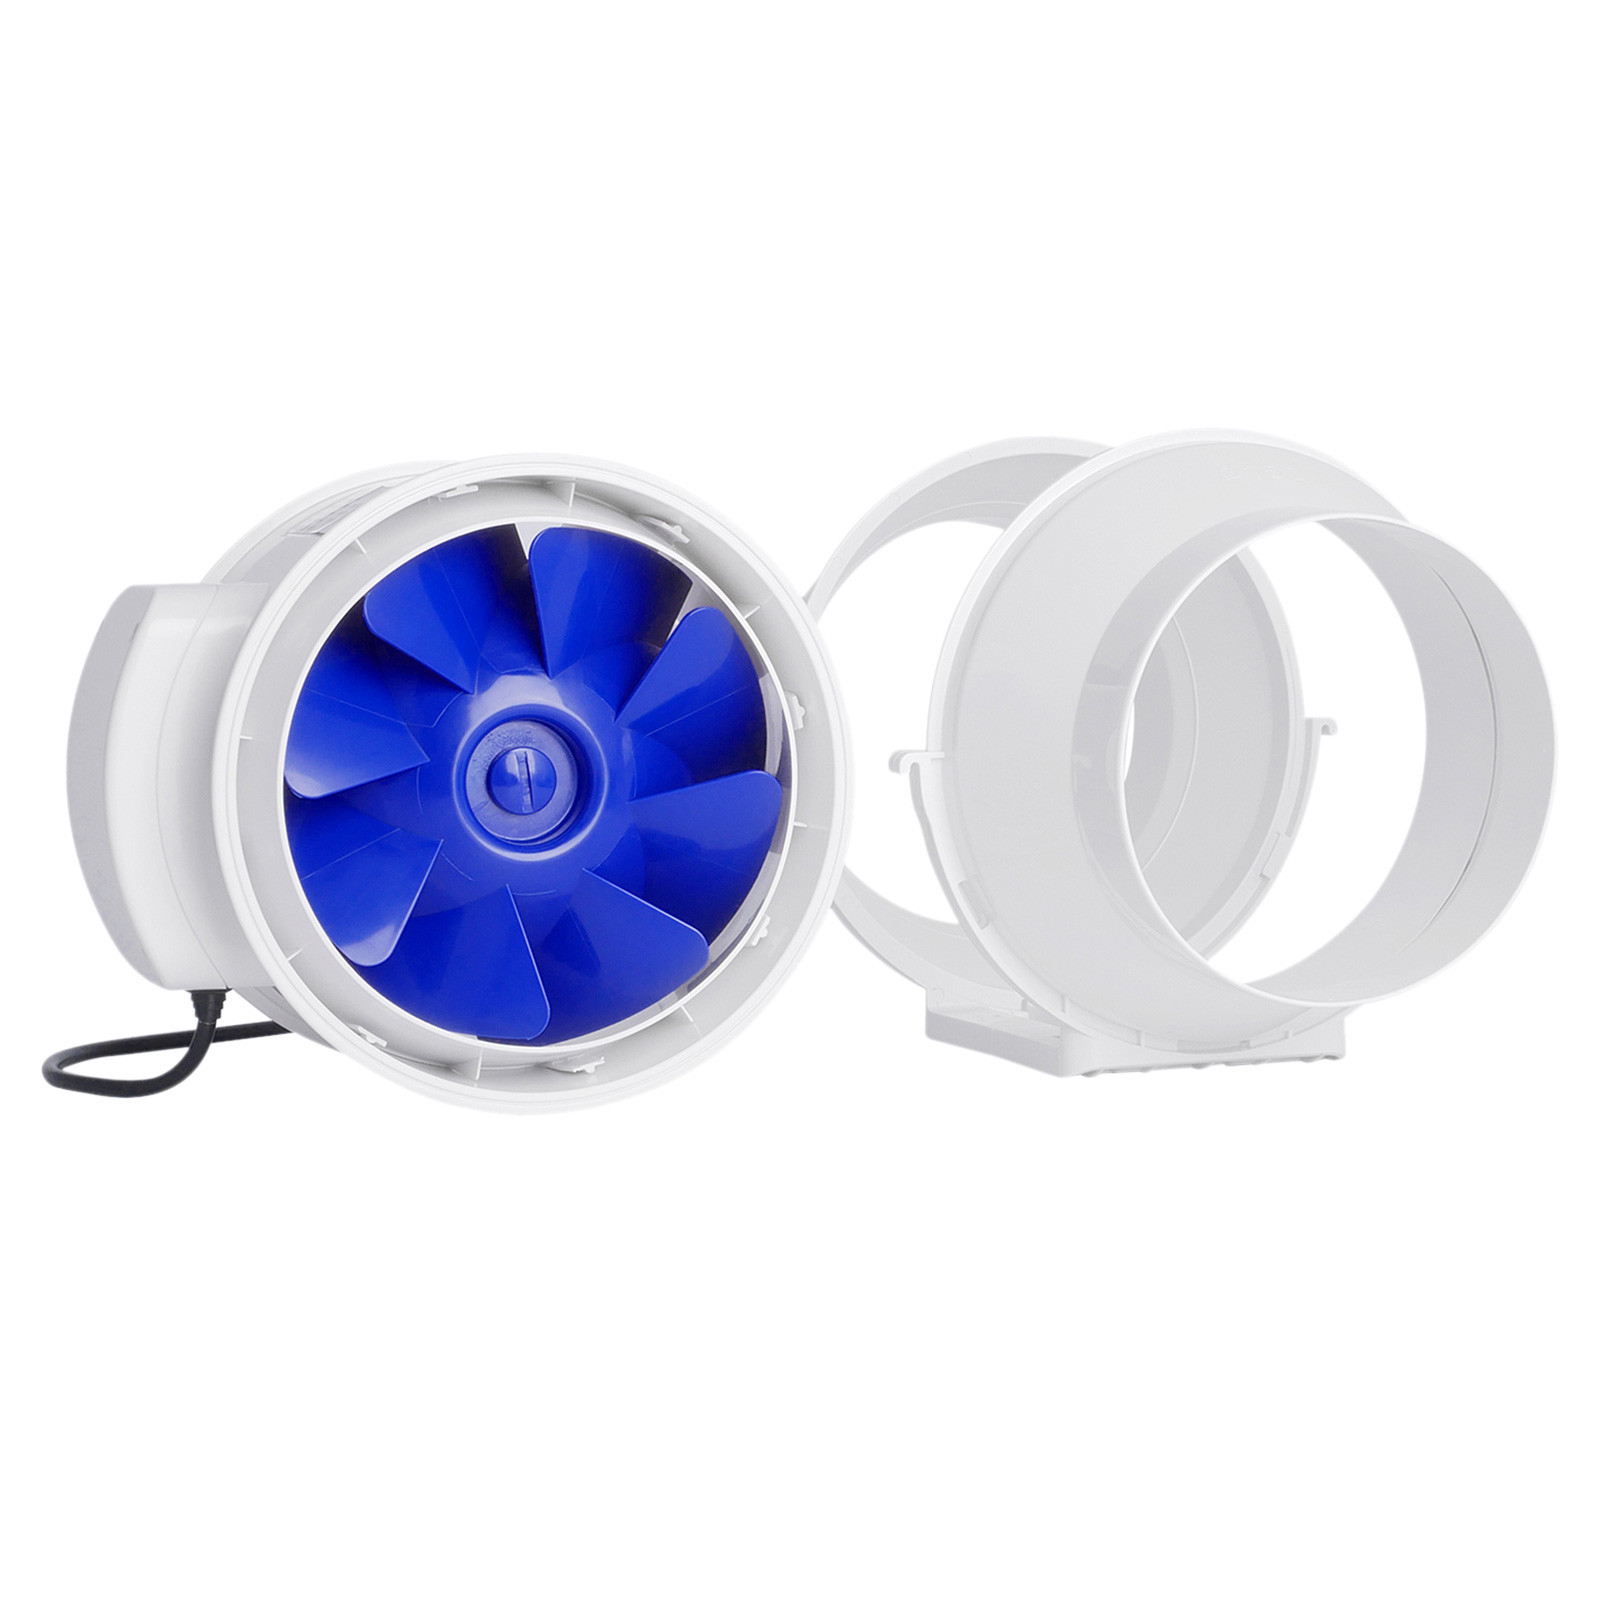 3 4 Quot 5 6 Quot 8 Quot Inline Duct Fan Mixed Flow Exhaust Fan